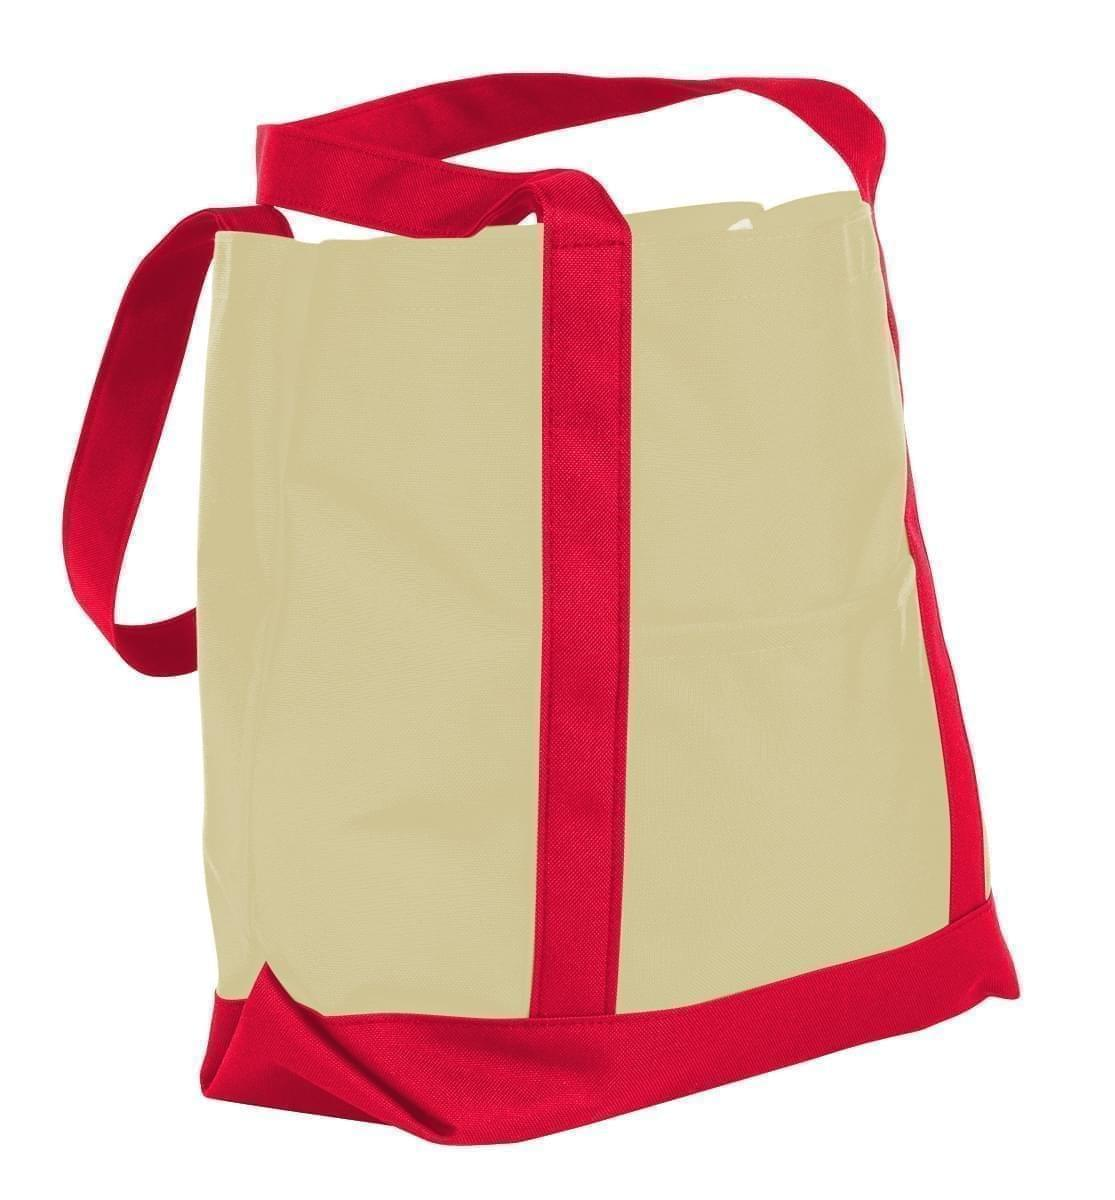 USA Made Canvas Fashion Tote Bags, Natural-Red, XAACL1UAKL